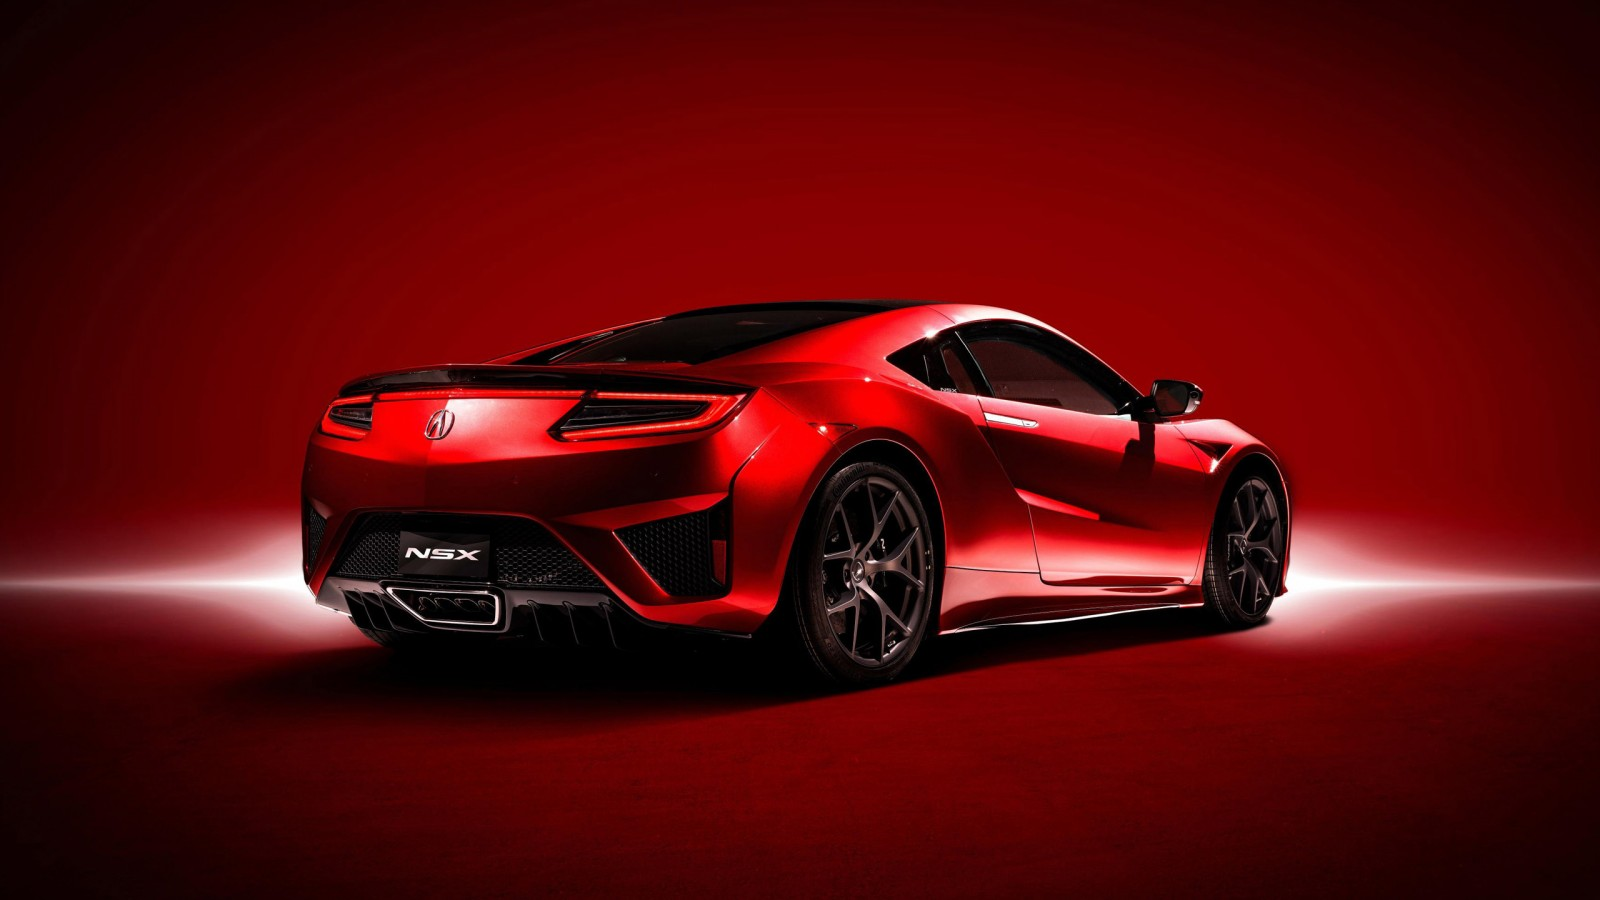 acura nsx 2017 2 wallpaper hd car wallpapers id 6576